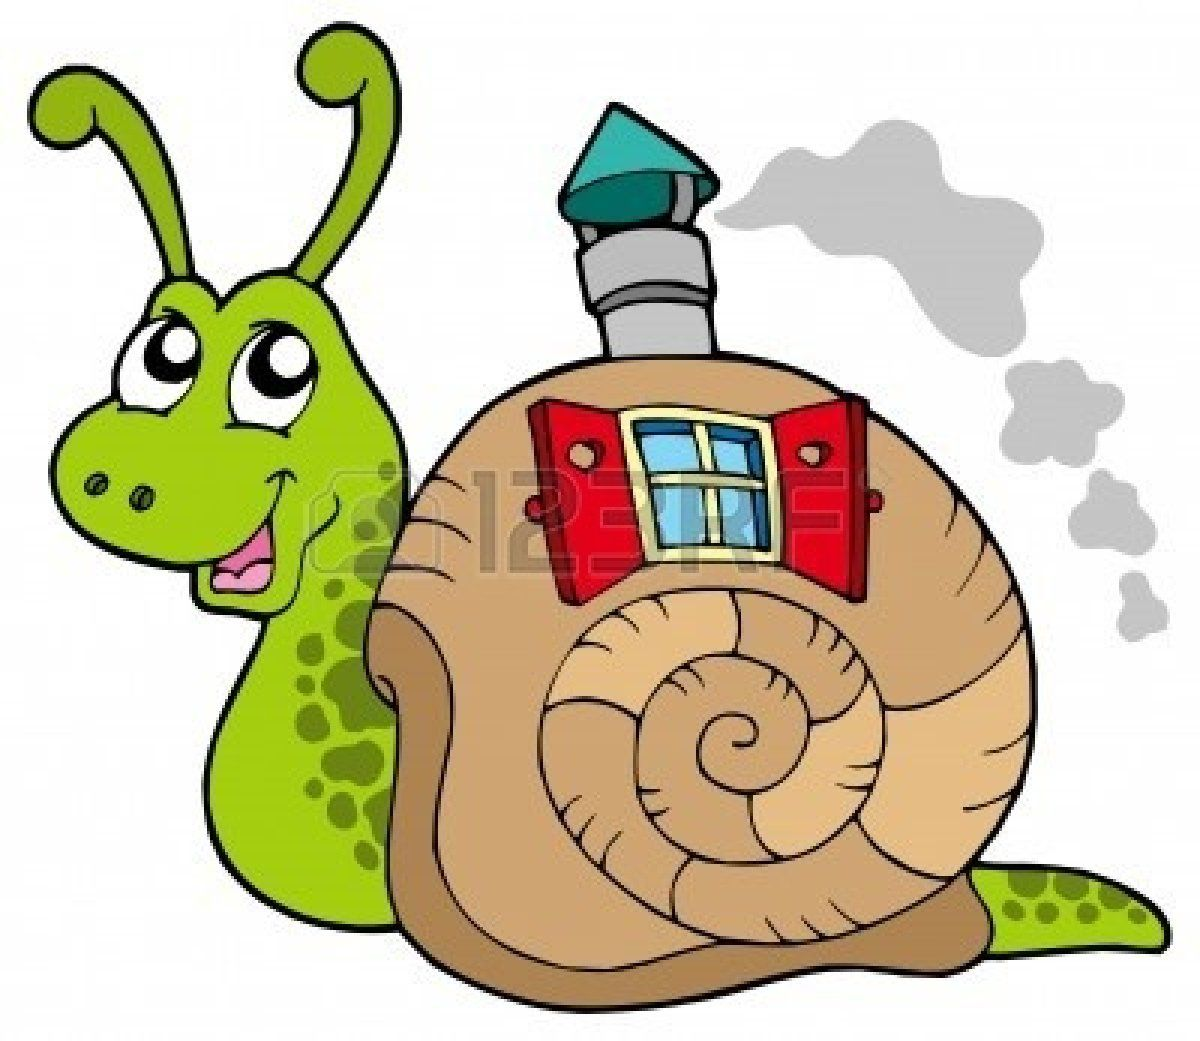 4928378 Snail With Shell House Vector Illustration Jpg 1200 1041 Baby Animal Drawings Snail Art Shell House